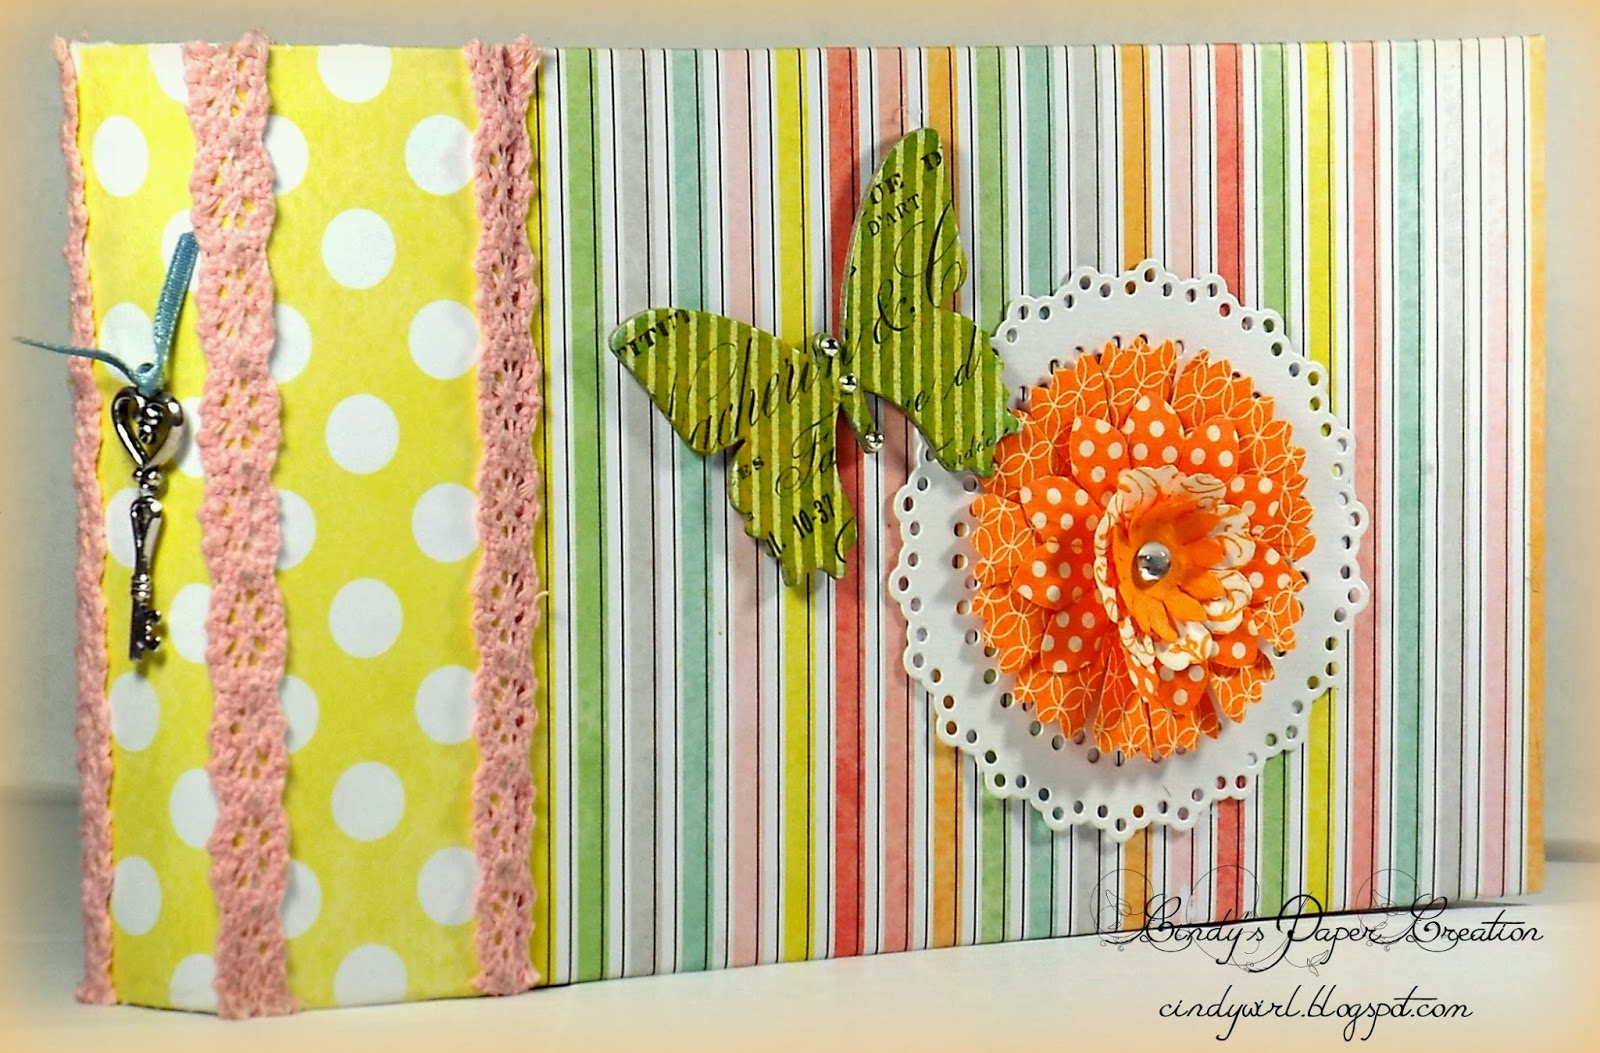 Easy Peasy Bag Mini Album by cindywirl.blogspot.com